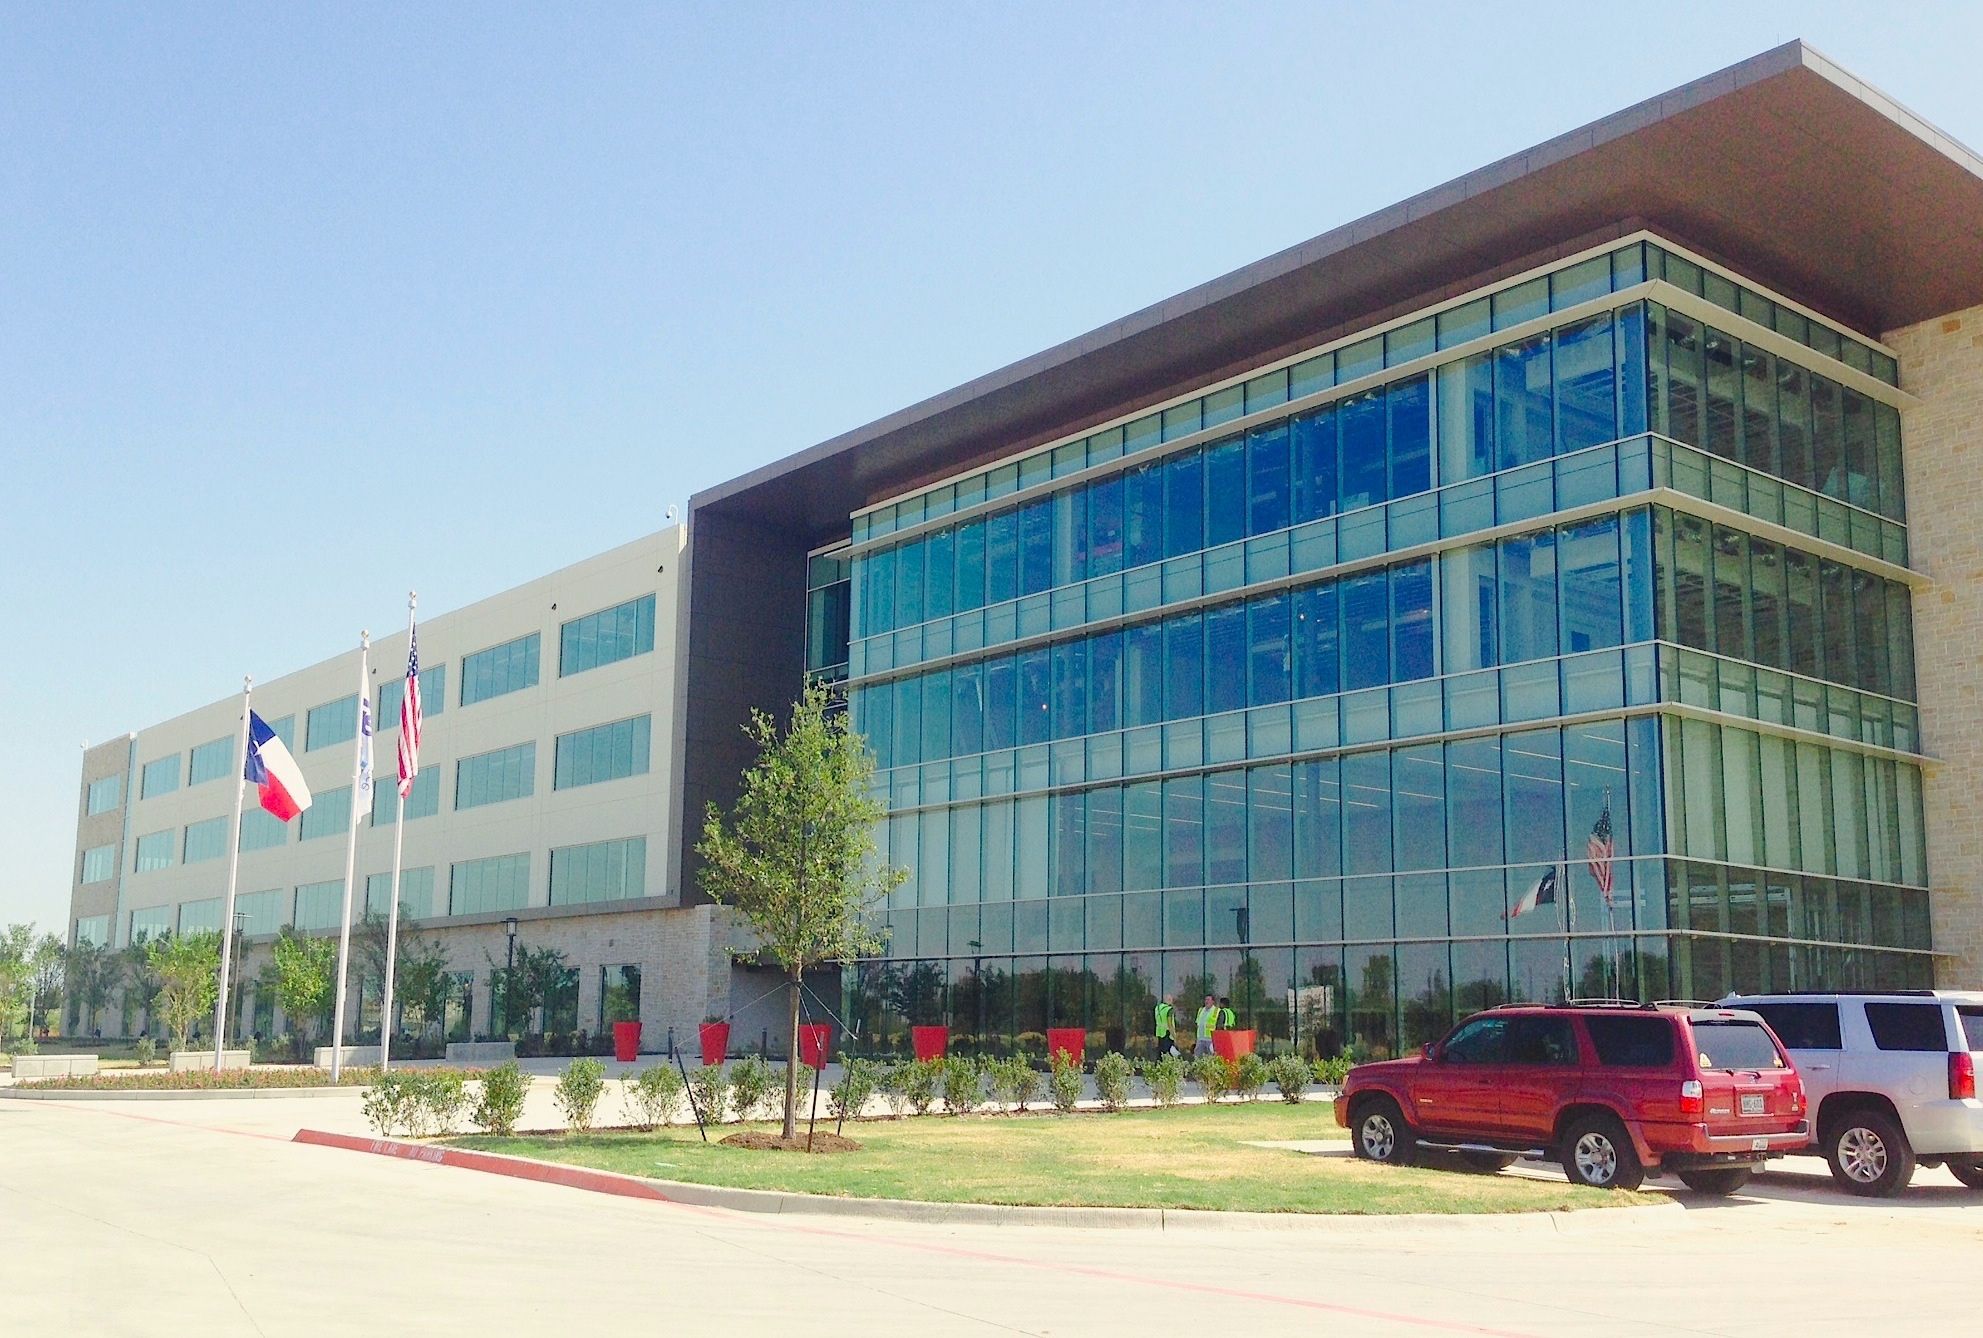 Legacy Wests FedEx fice headquarters in Plano is sold to